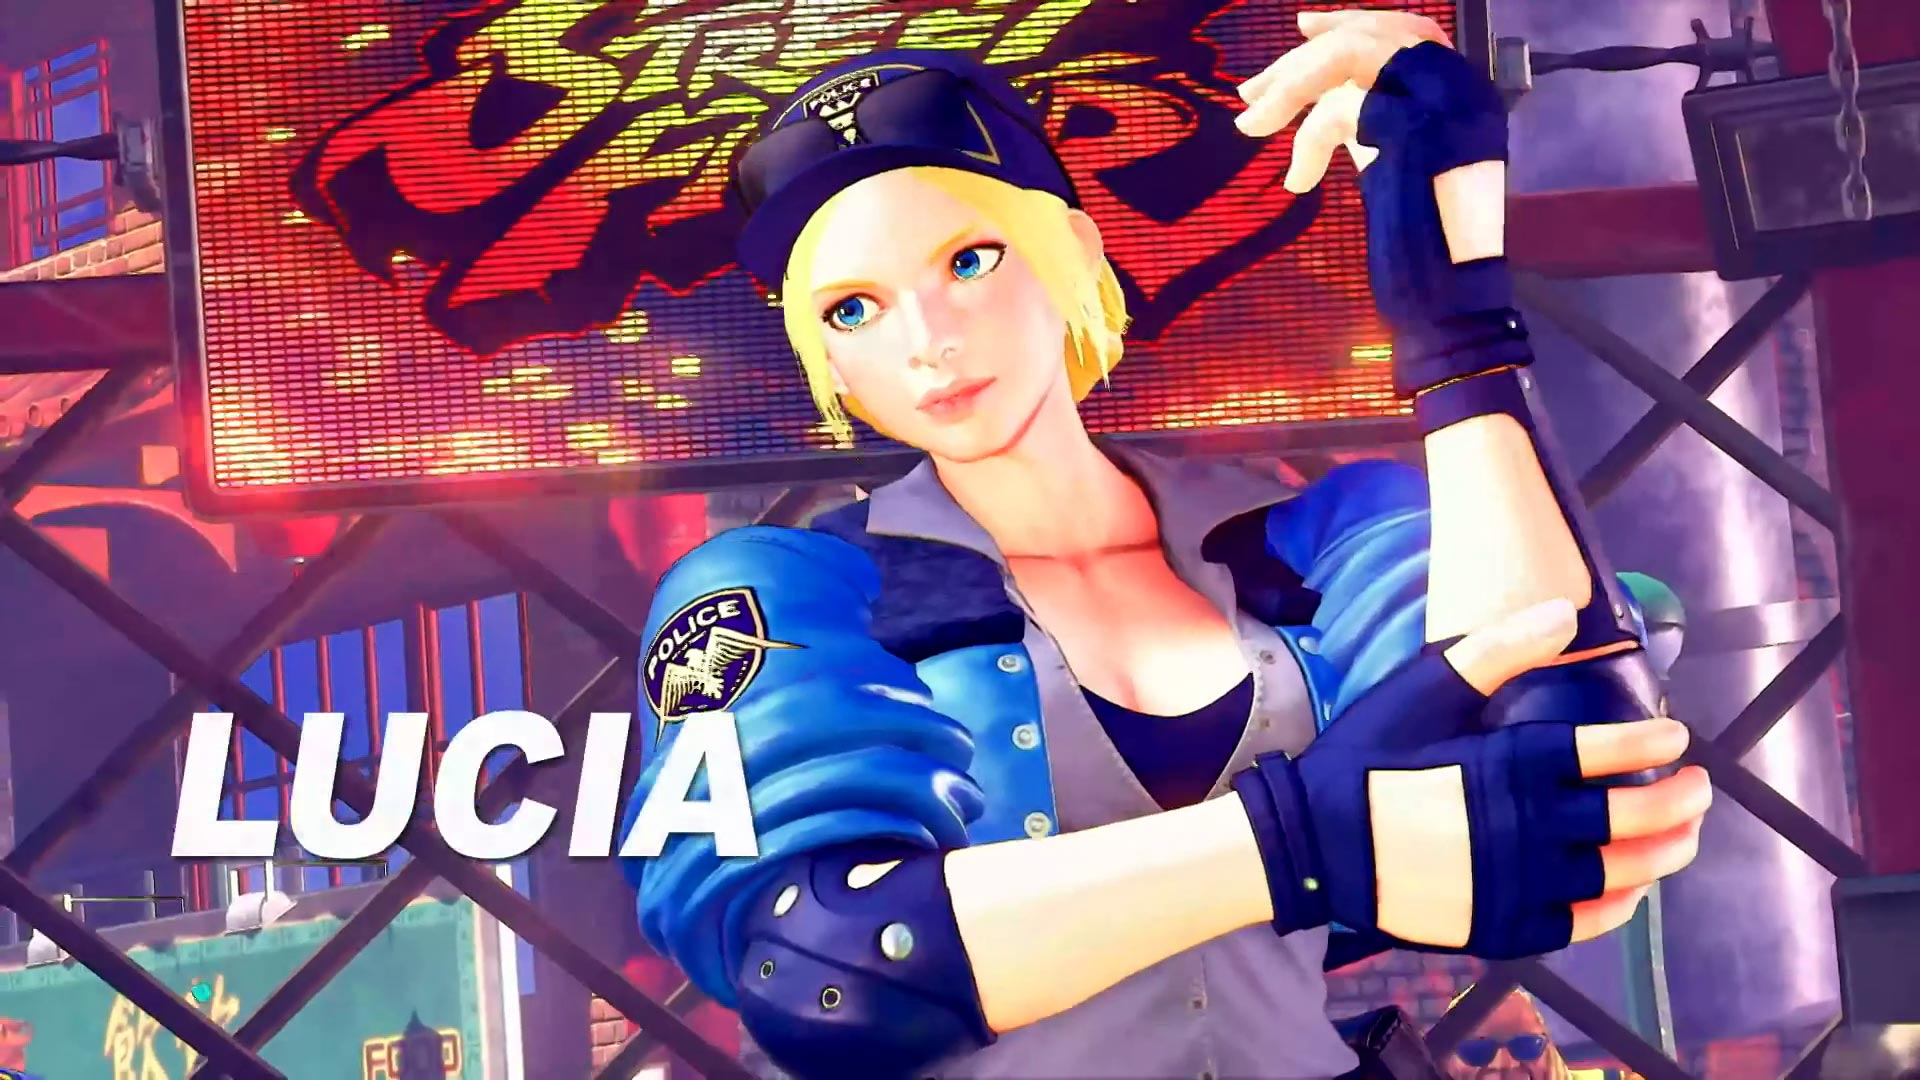 Street Fighter 5 leaked gallery of E. Honda, Lucia and Poison 7 out of 35 image gallery